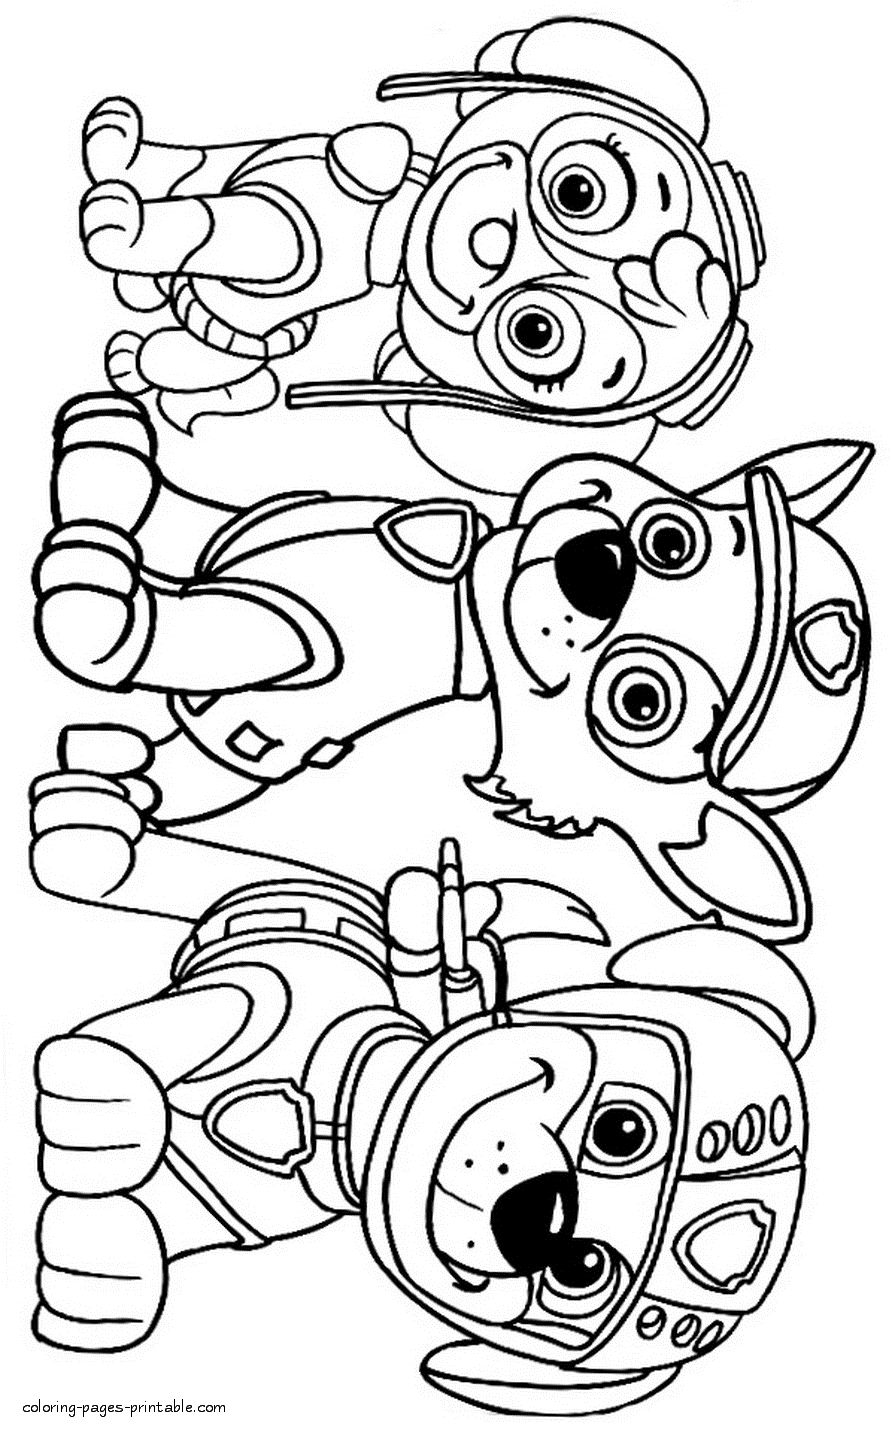 45+ Cartoon coloring pages paw patrol information